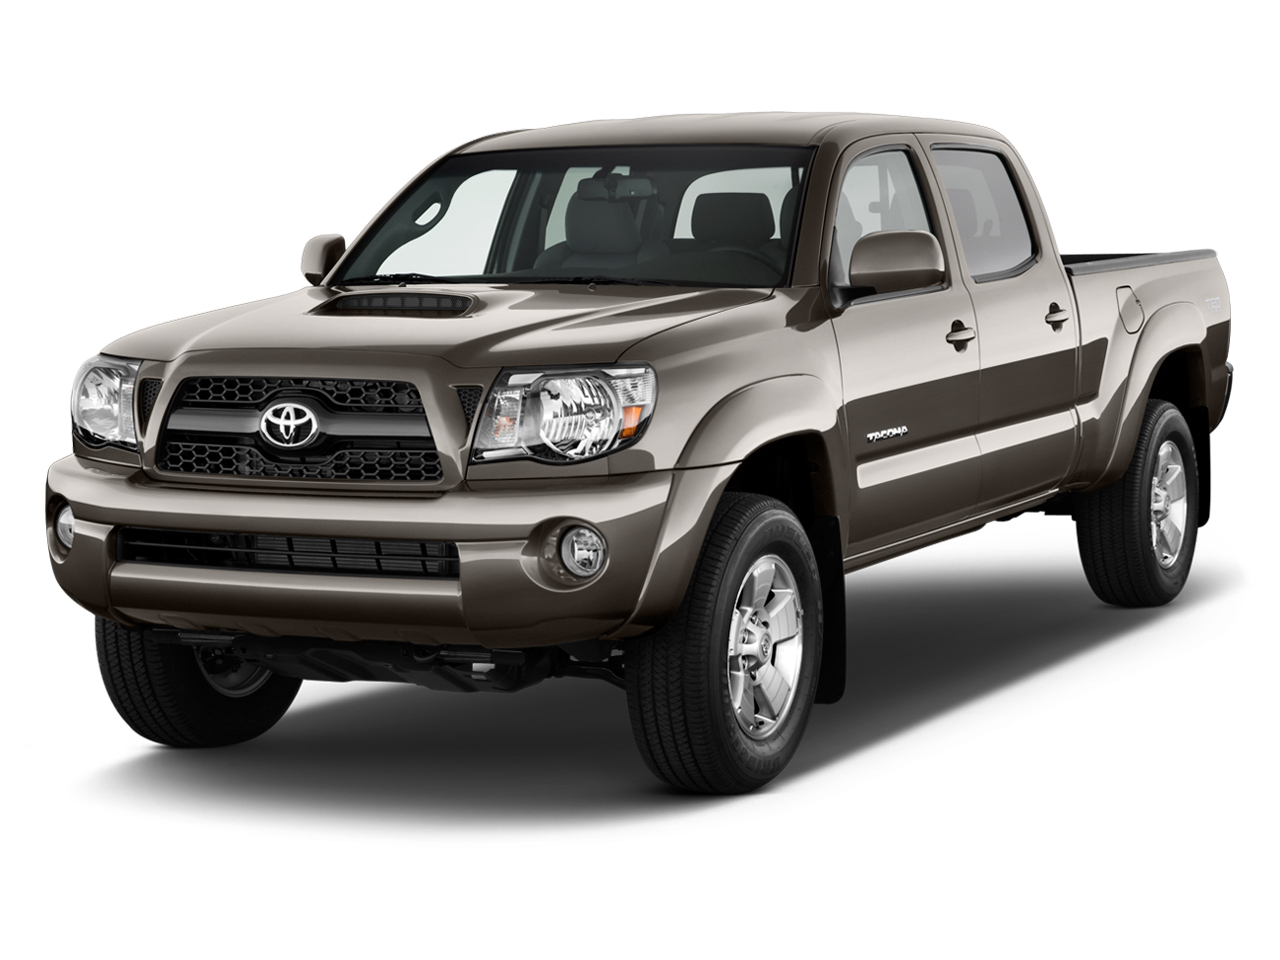 2011 Toyota Tacoma Review, Ratings, Specs, Prices, and Photos - The ...